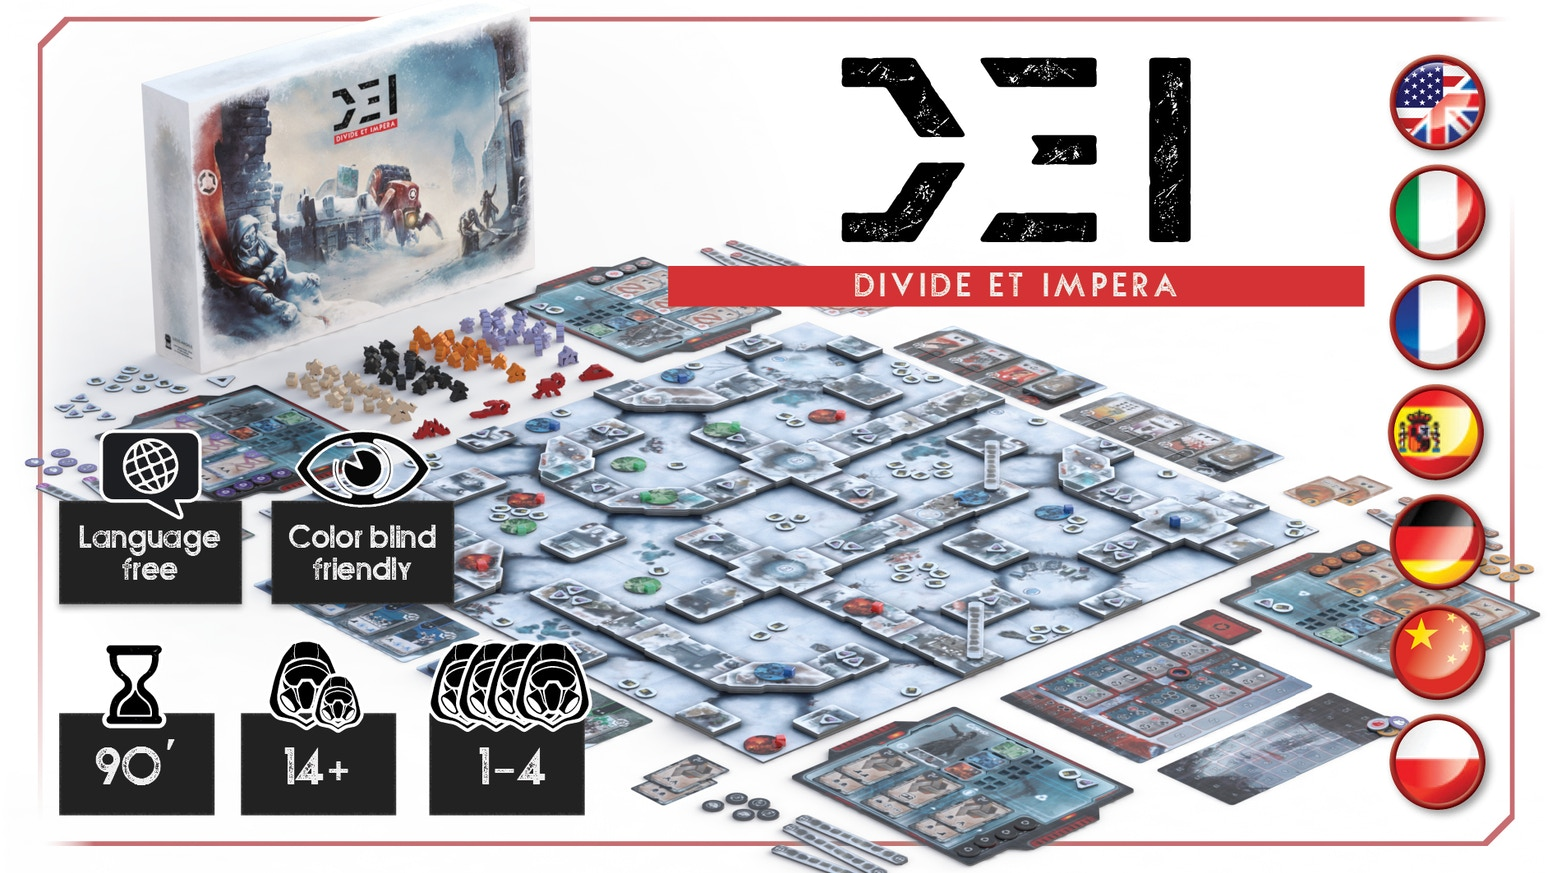 D.E.I. - Divide et Impera is a competitive game based on conquests of resources, set in a world devastated by a New Ice Age